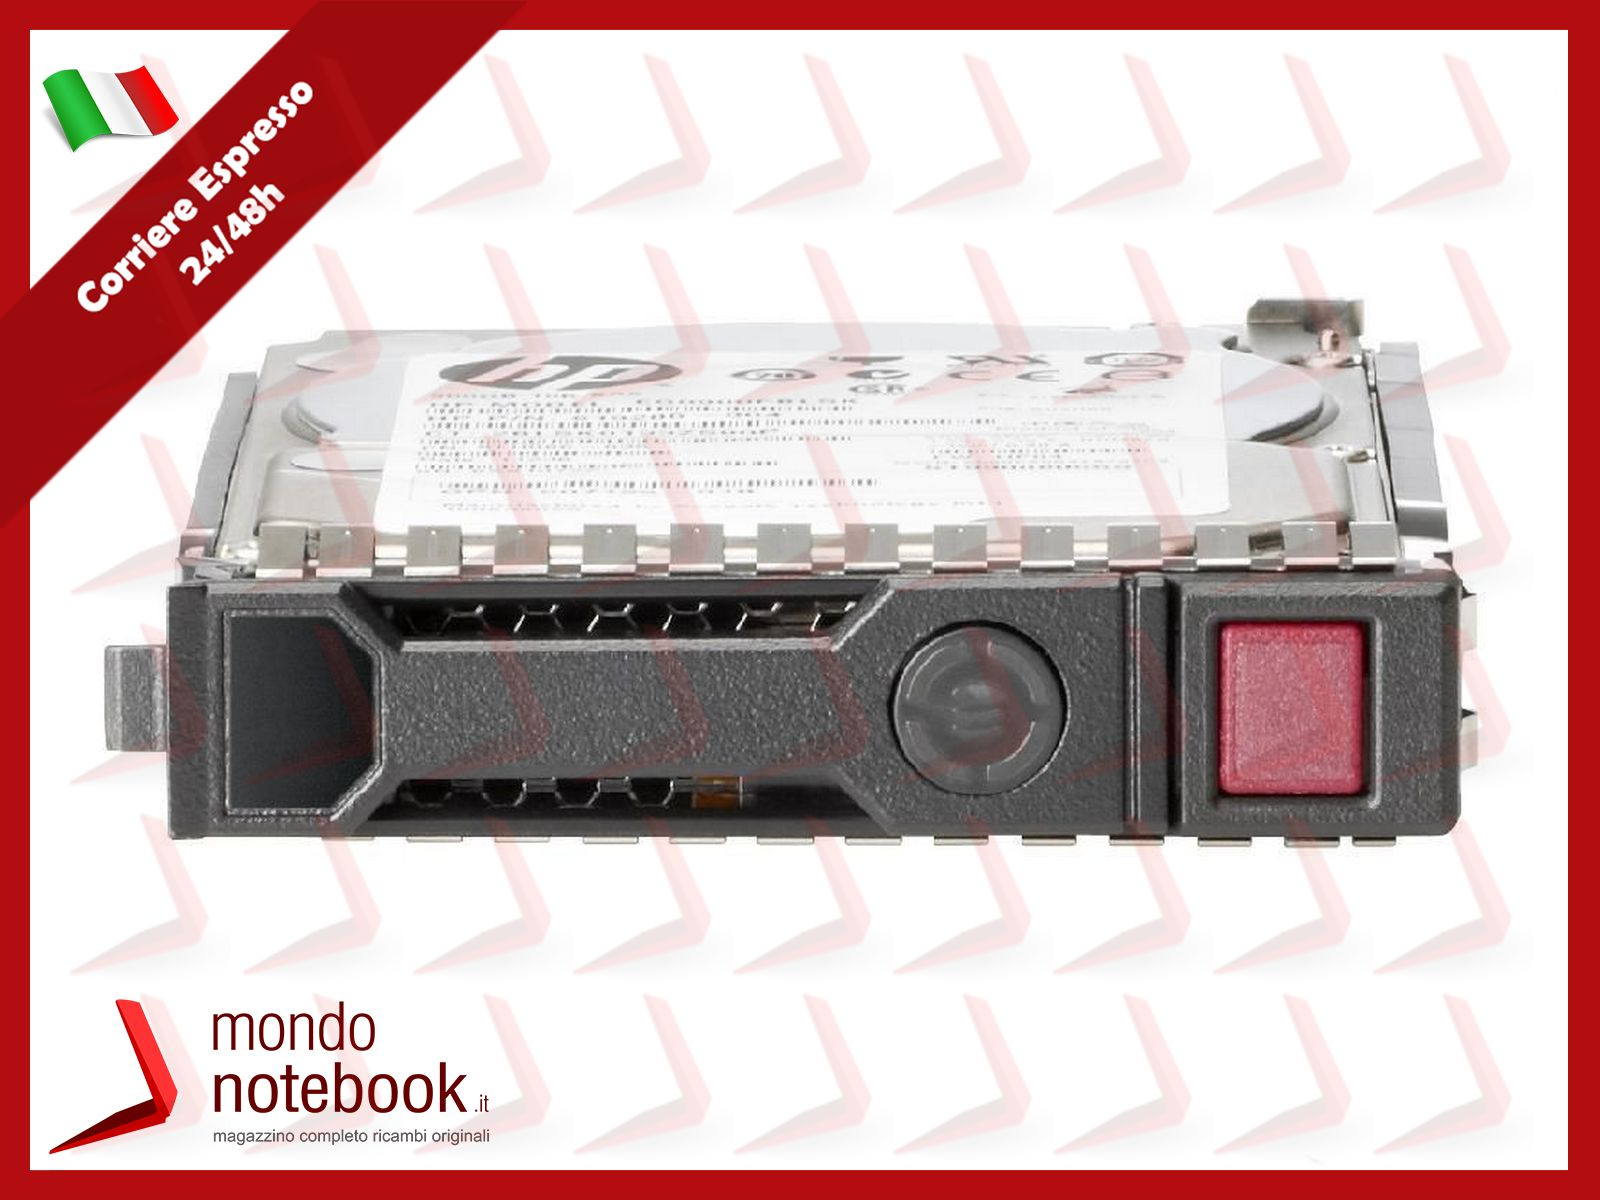 https://www.mondonotebook.it/12497/green-cell-batteria-per-toshiba-satellite-c850-c855-c870-l850-l855-pa5109u-1brs-111v-4400mah.jpg